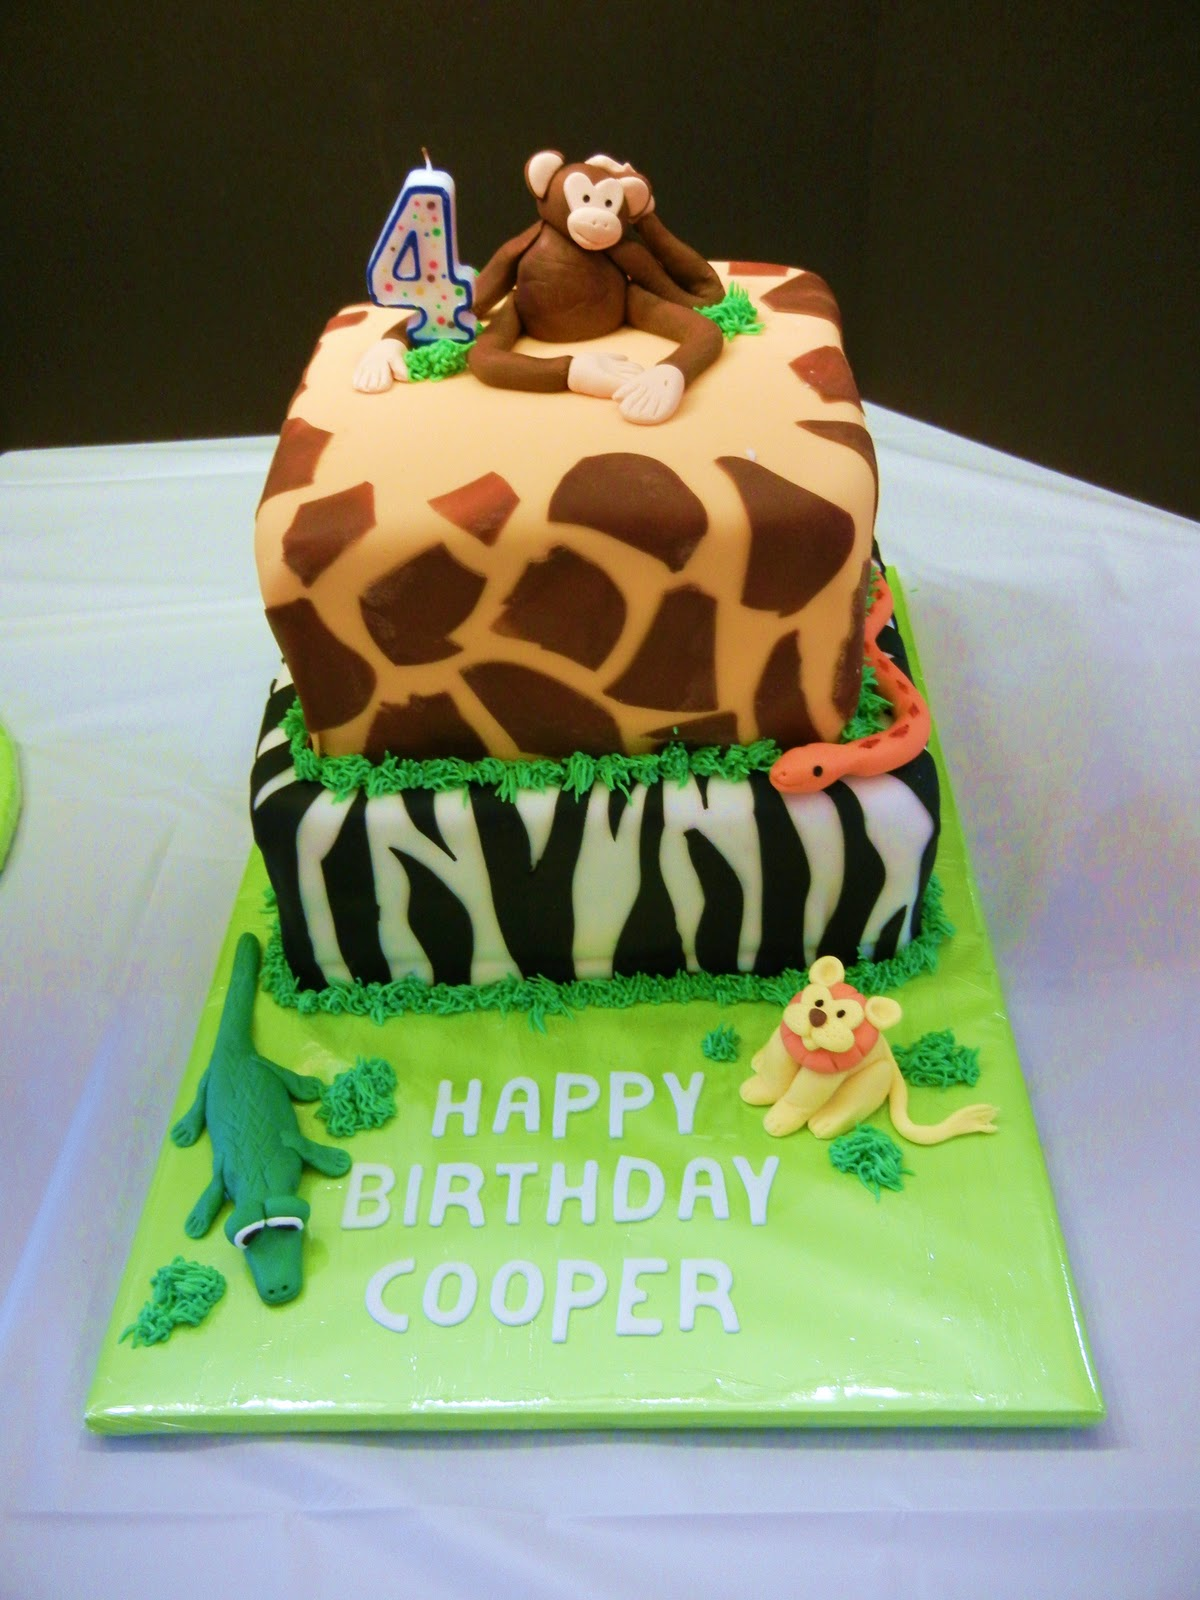 Pleasing Striving For Confection Perfection Jungle Birthday Cake Funny Birthday Cards Online Inifodamsfinfo